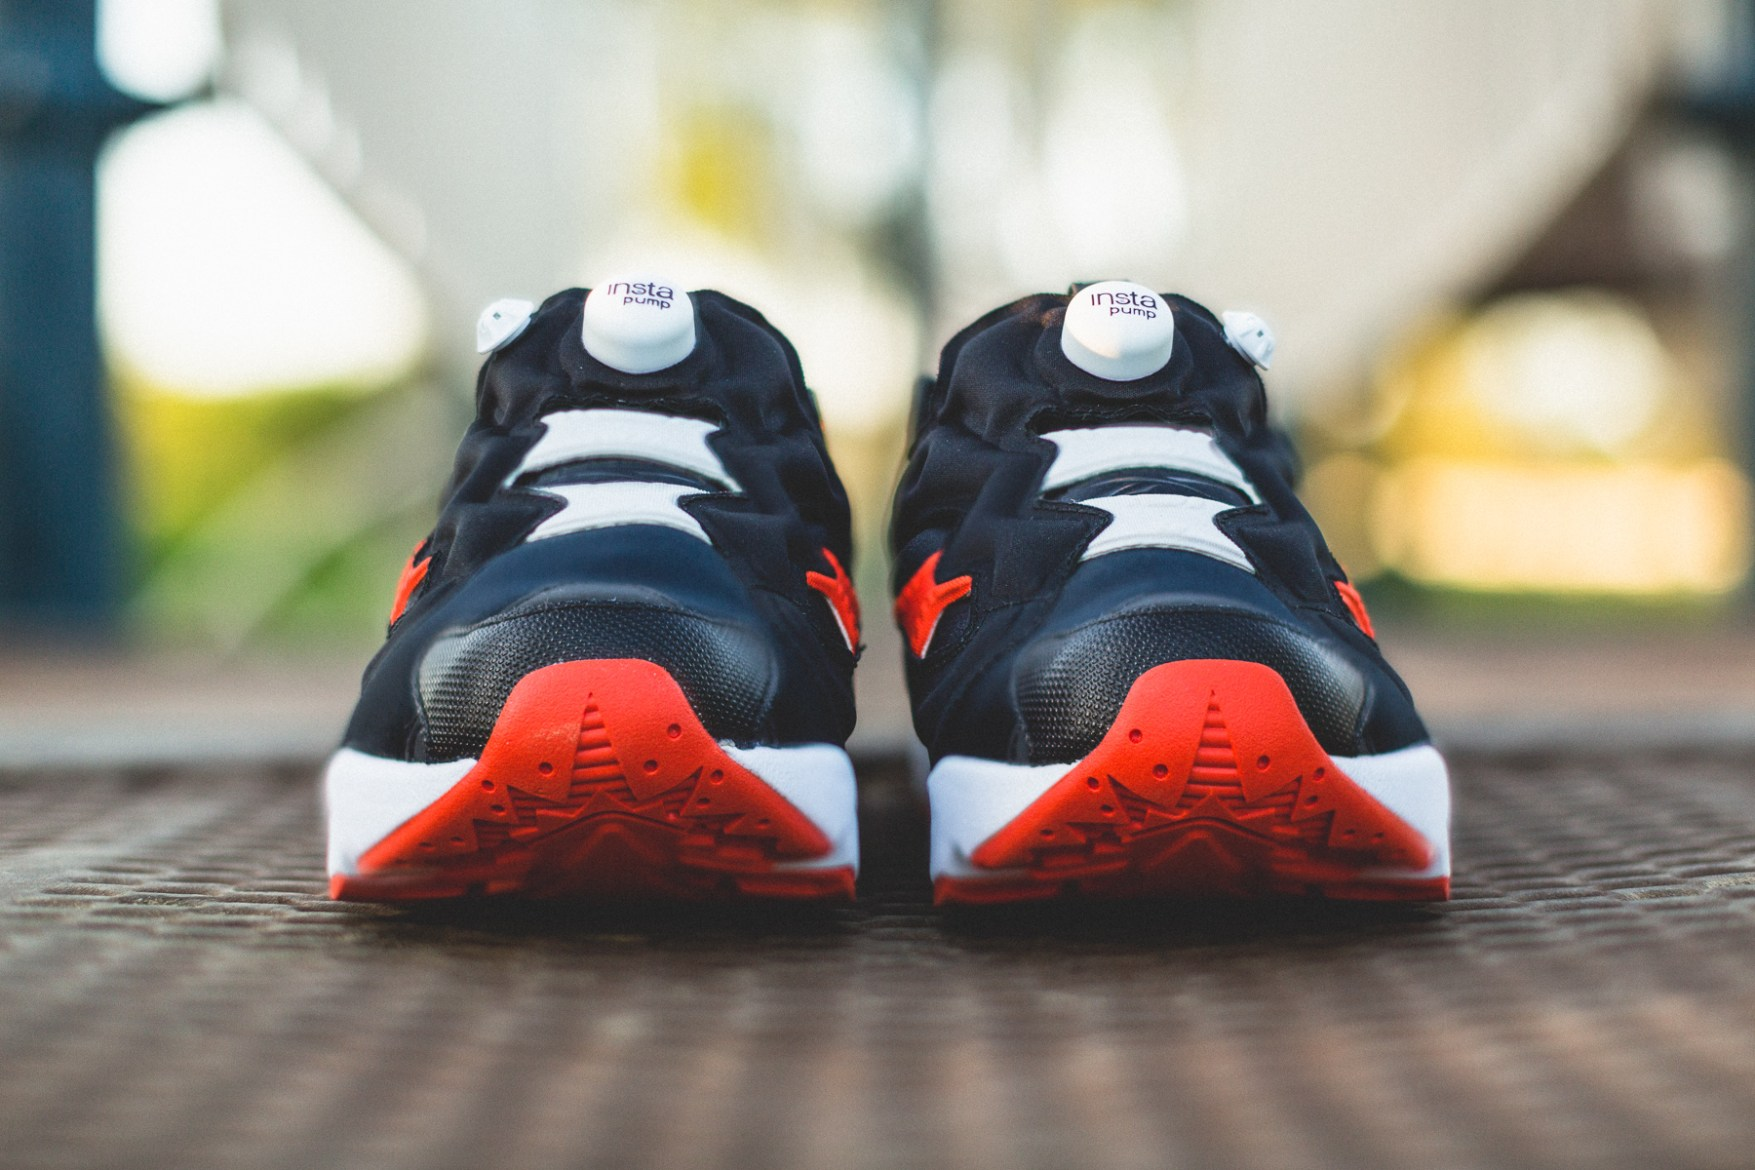 Highs and Lows x Reebok Instapump Fury 20th Anniversary